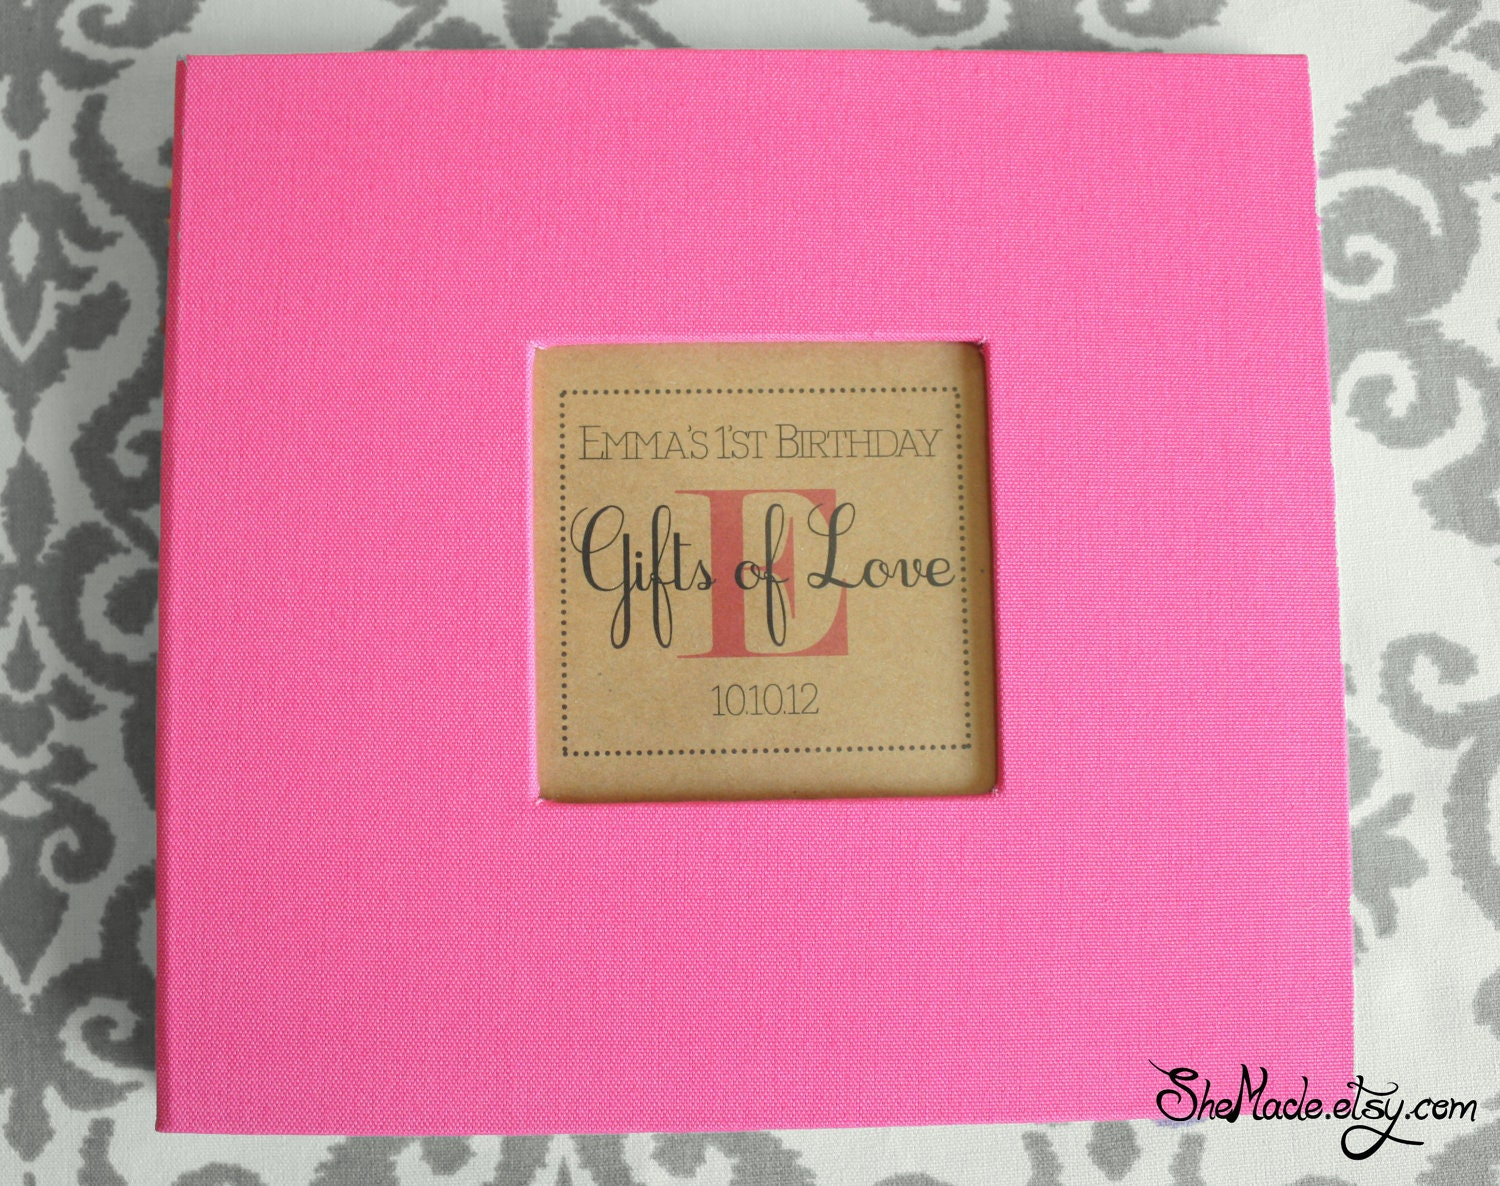 Bridal Shower Gift Record Book : Gift Log book, perfect for bridal showers, weddings, baby showers ...